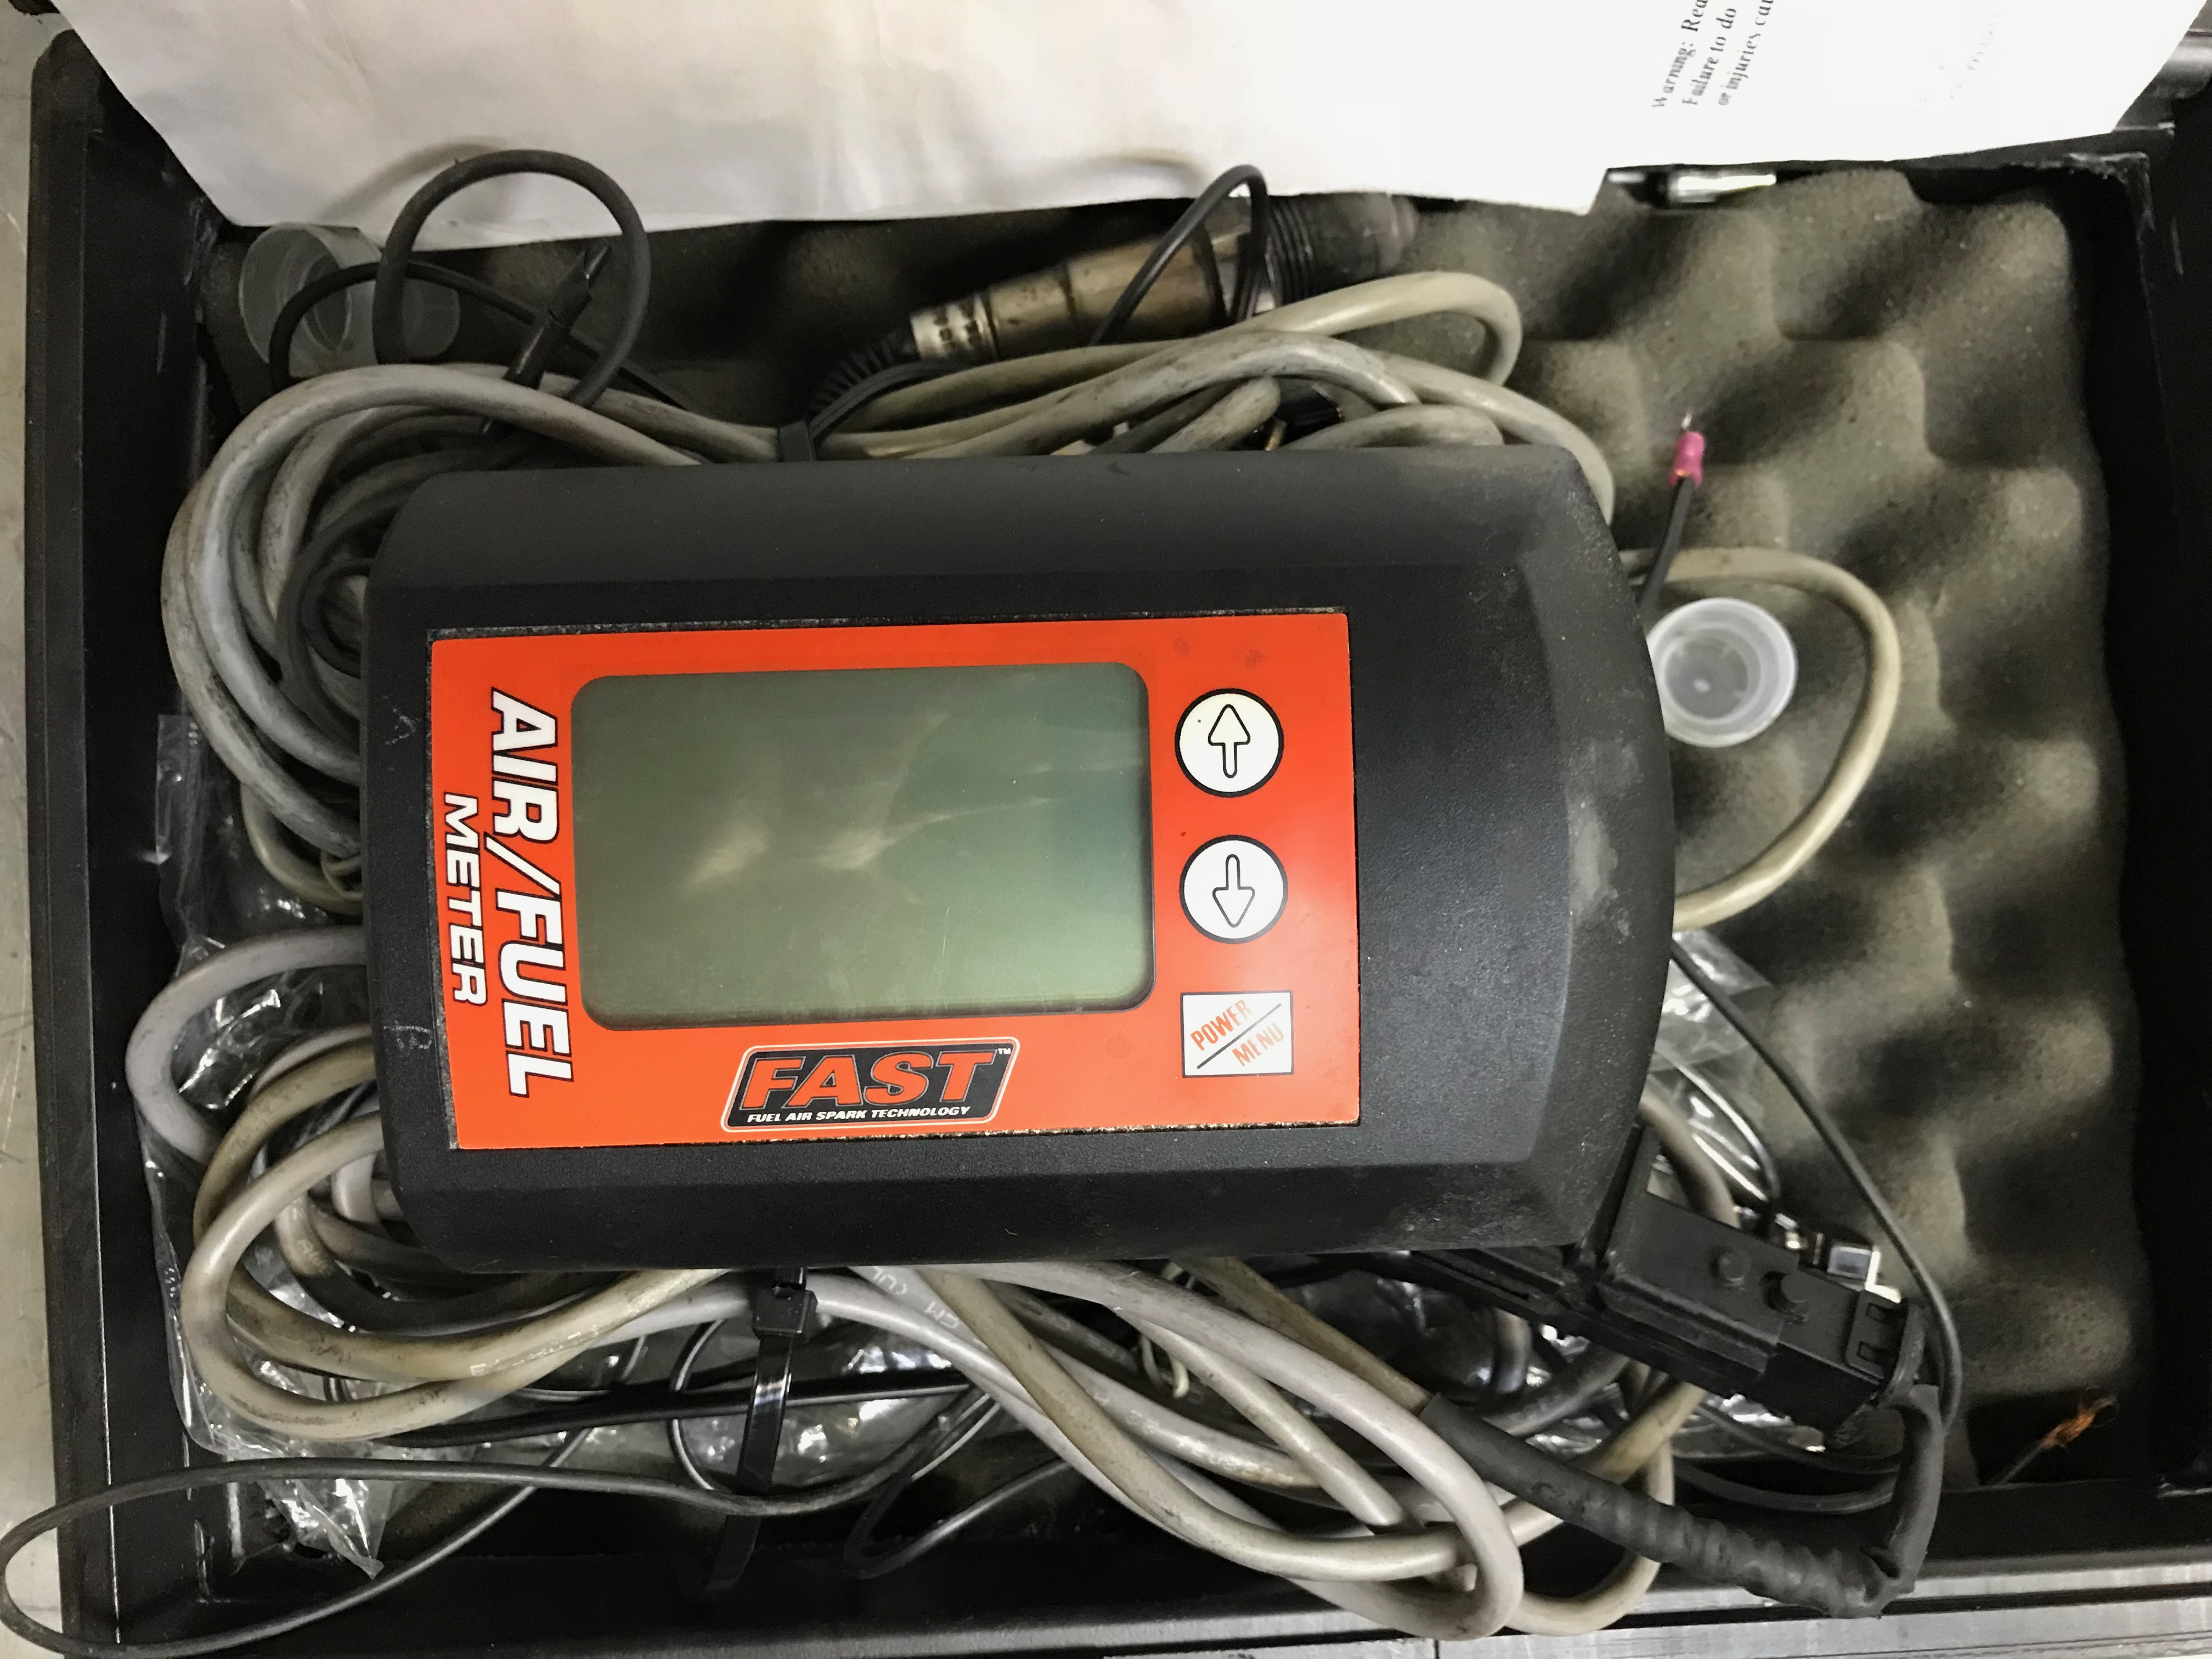 FAST Gasoline Air/Fuel Meter